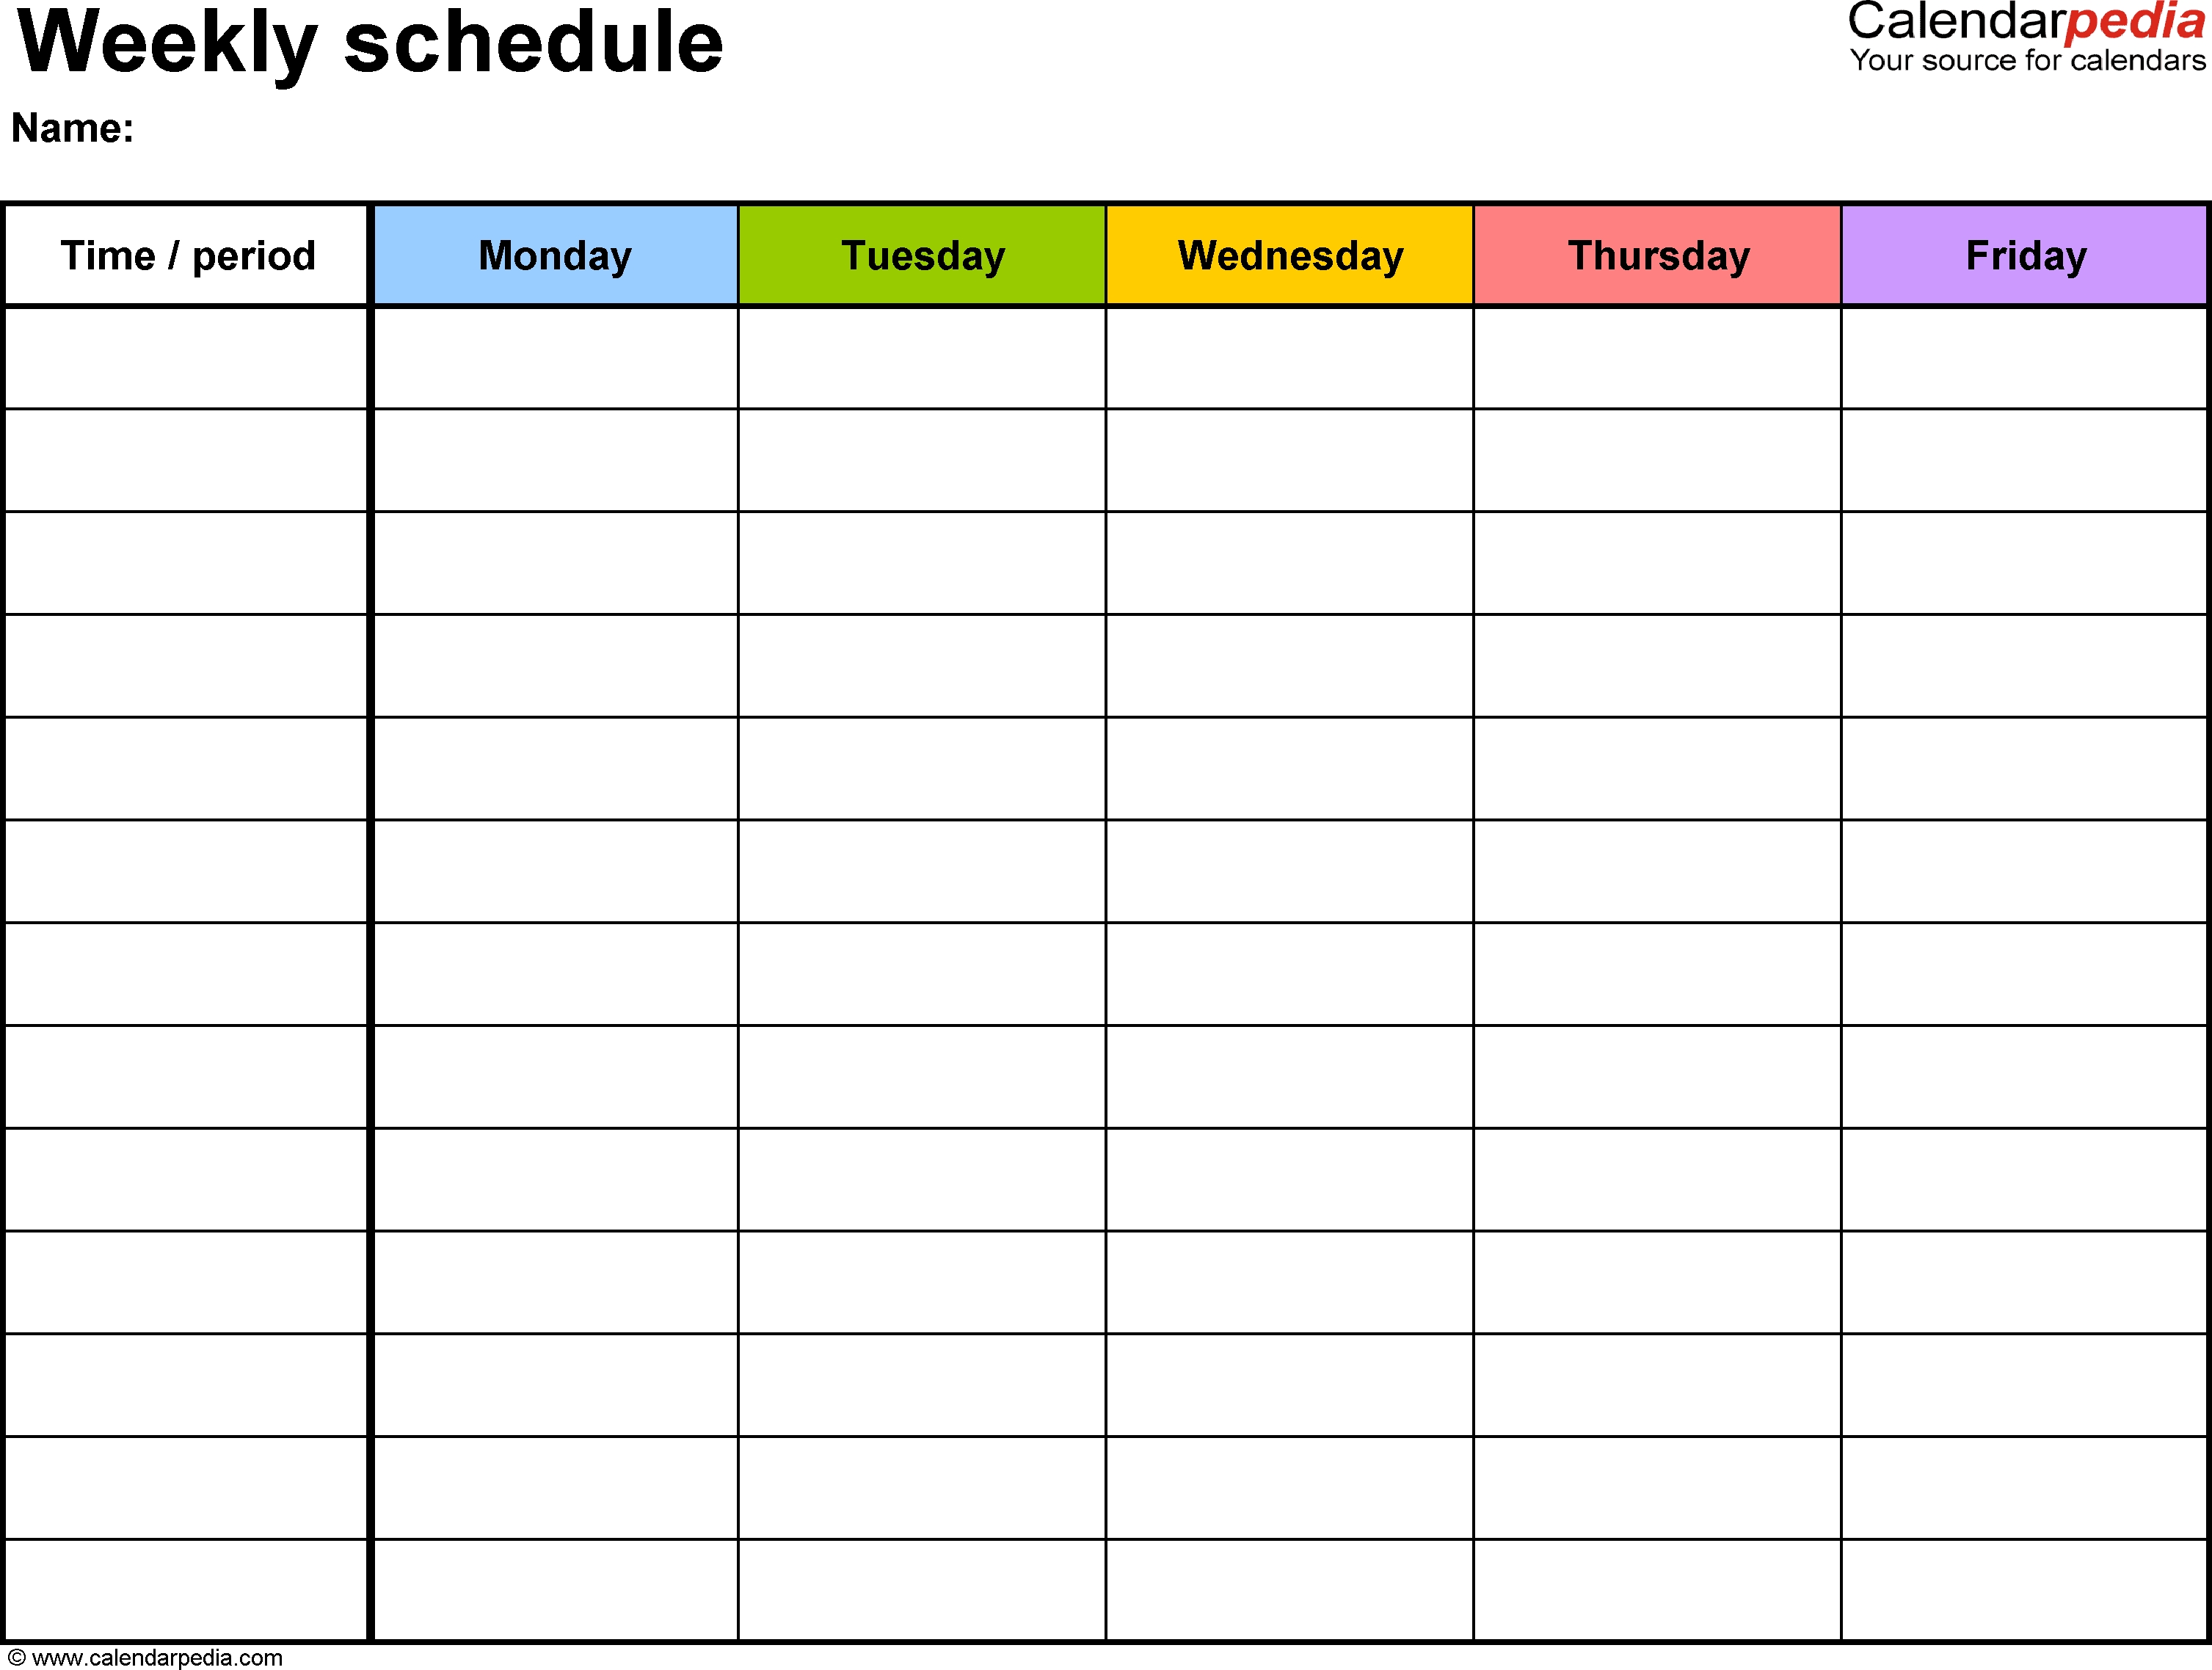 Free Weekly Schedule Templates For Word - 18 Templates  Monday Through Friday Calendar Template